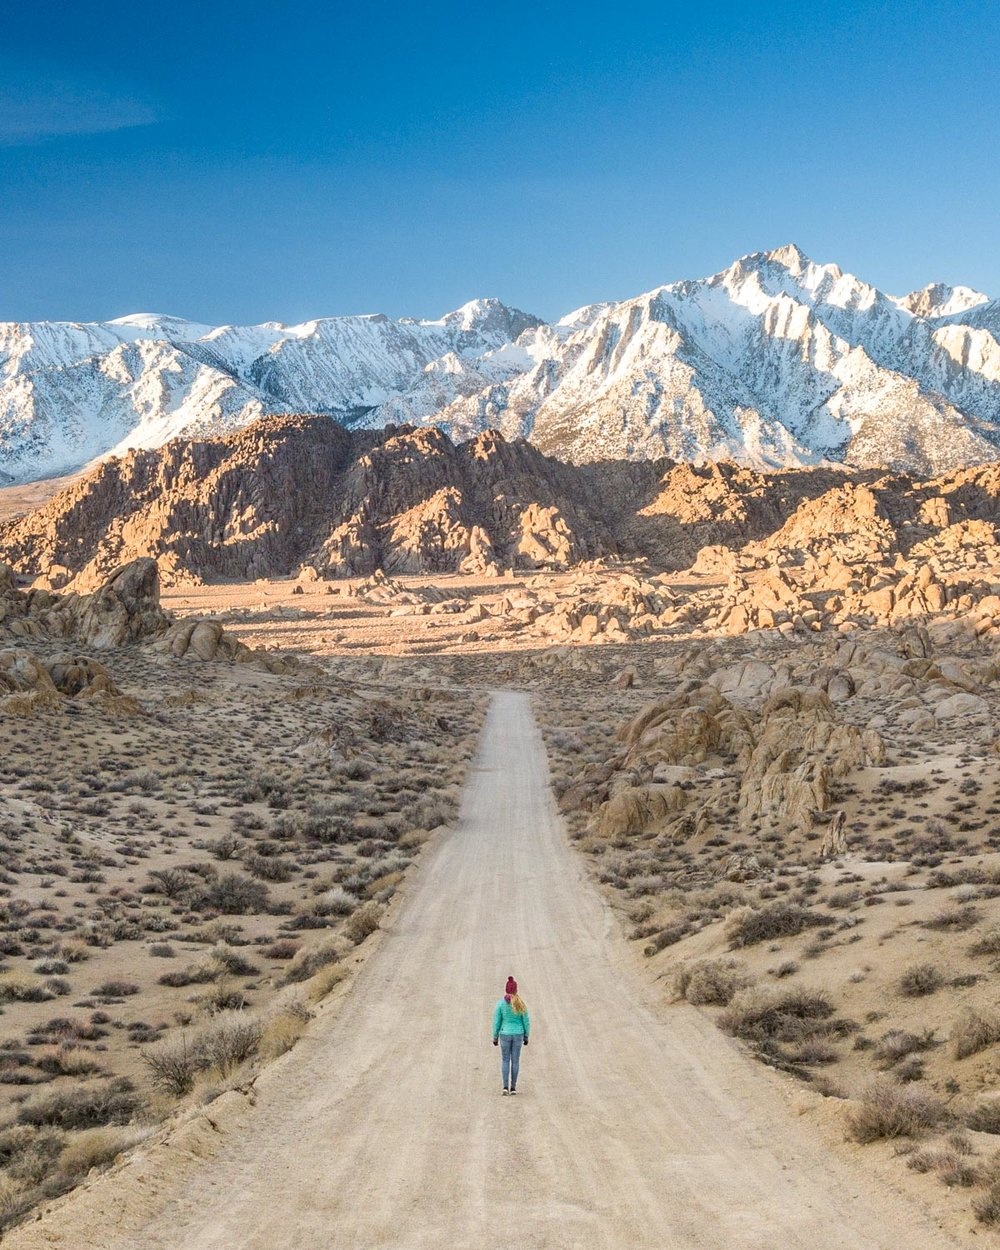 The most famous viewpoint on Movie Road, Alabama Hills